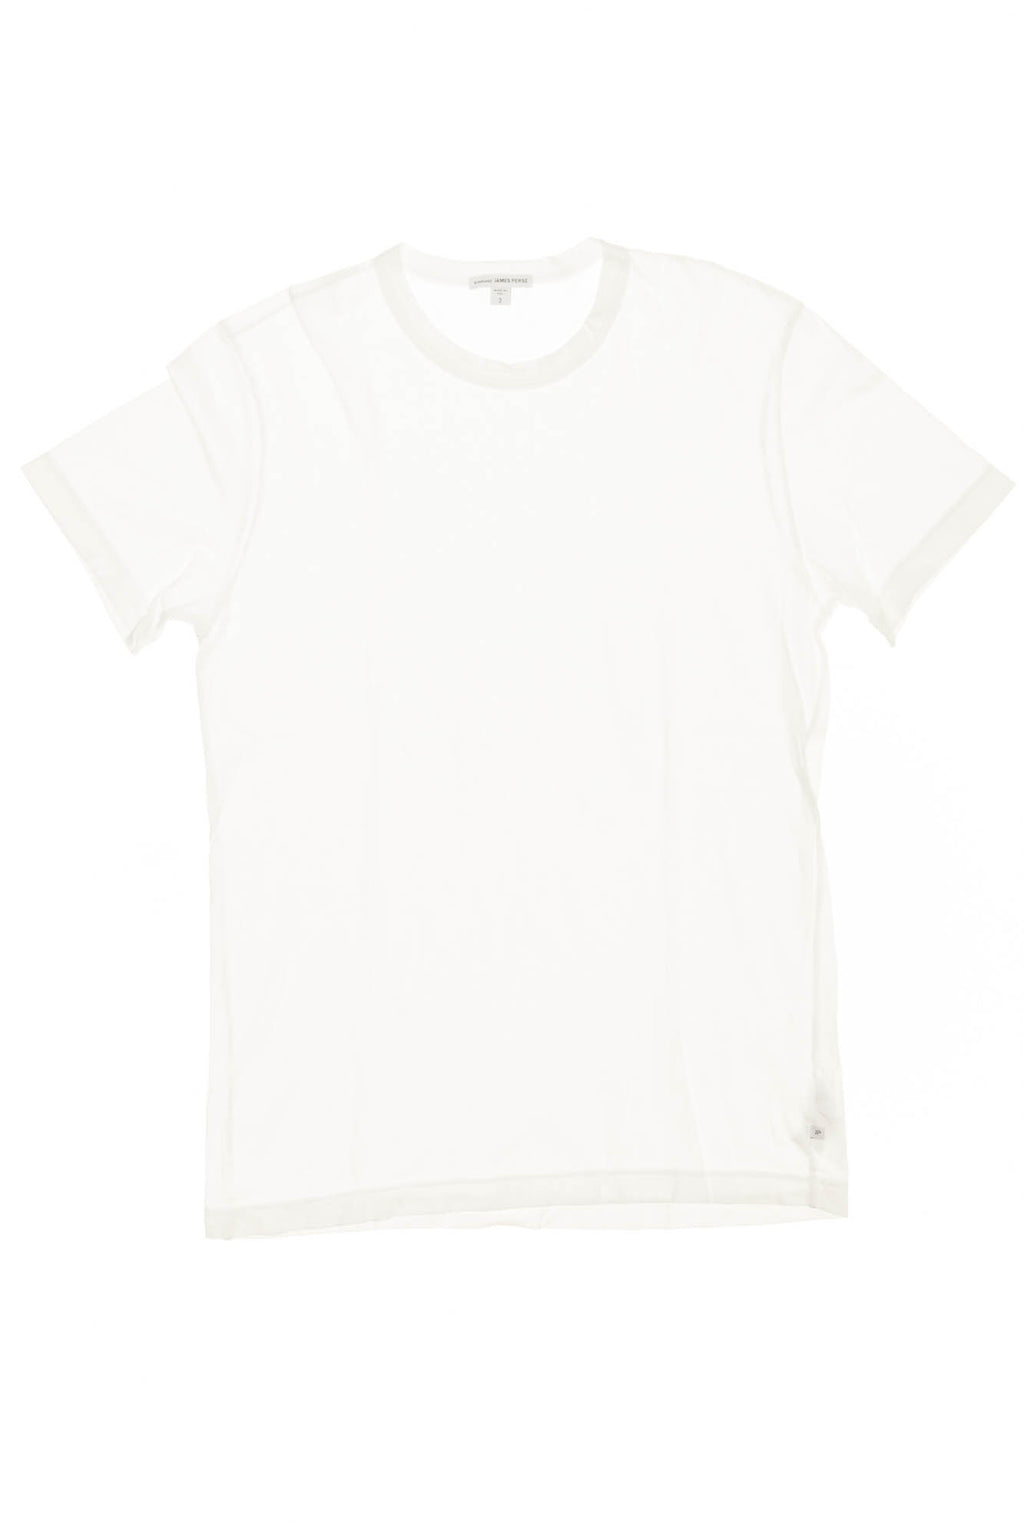 James Perse - White Short Sleeve TShirt - 1